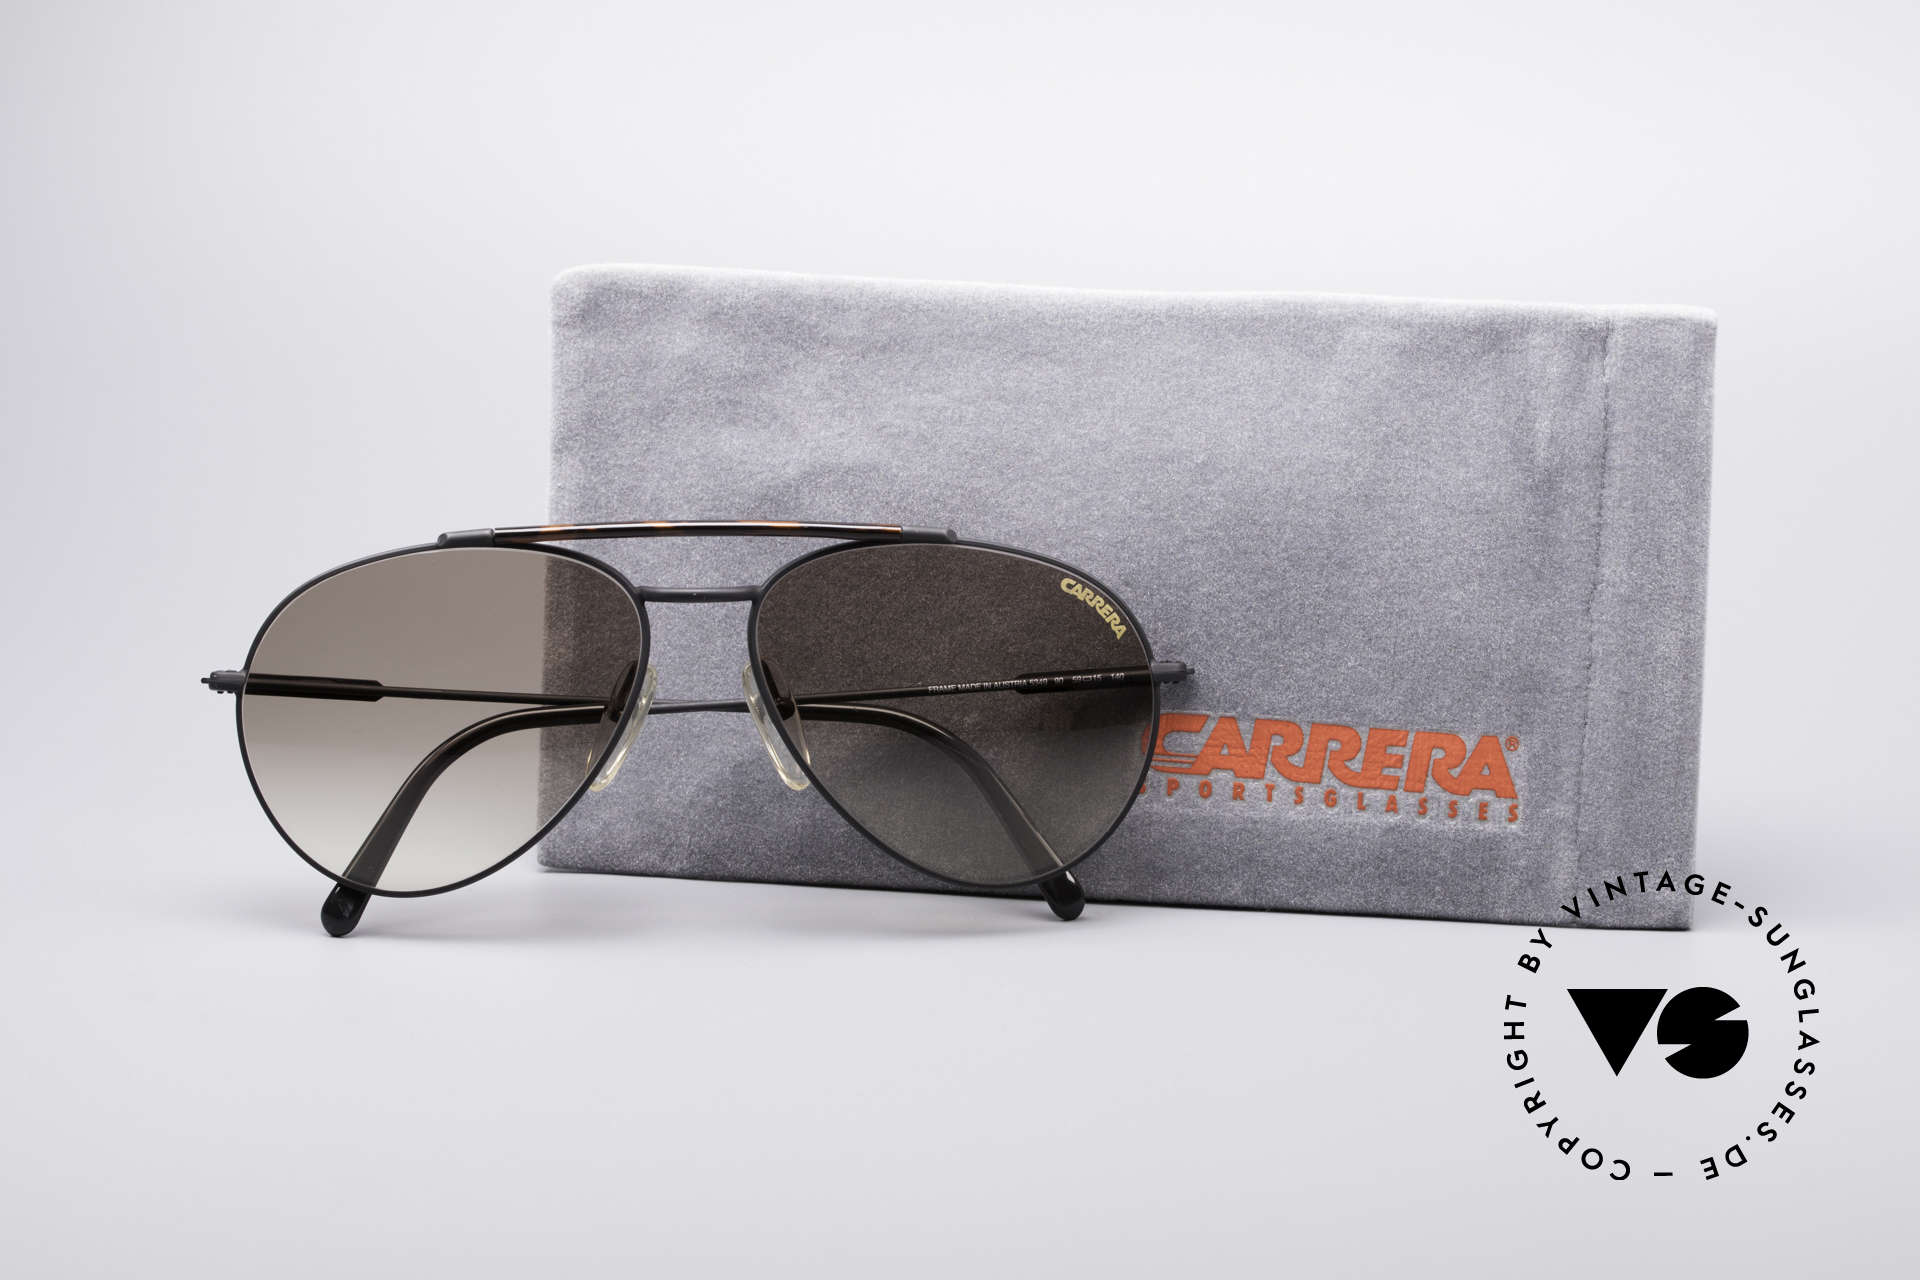 Carrera 5349 True Vintage 80's Shades, never worn (like all our vintage Carrera sunglasses), Made for Men